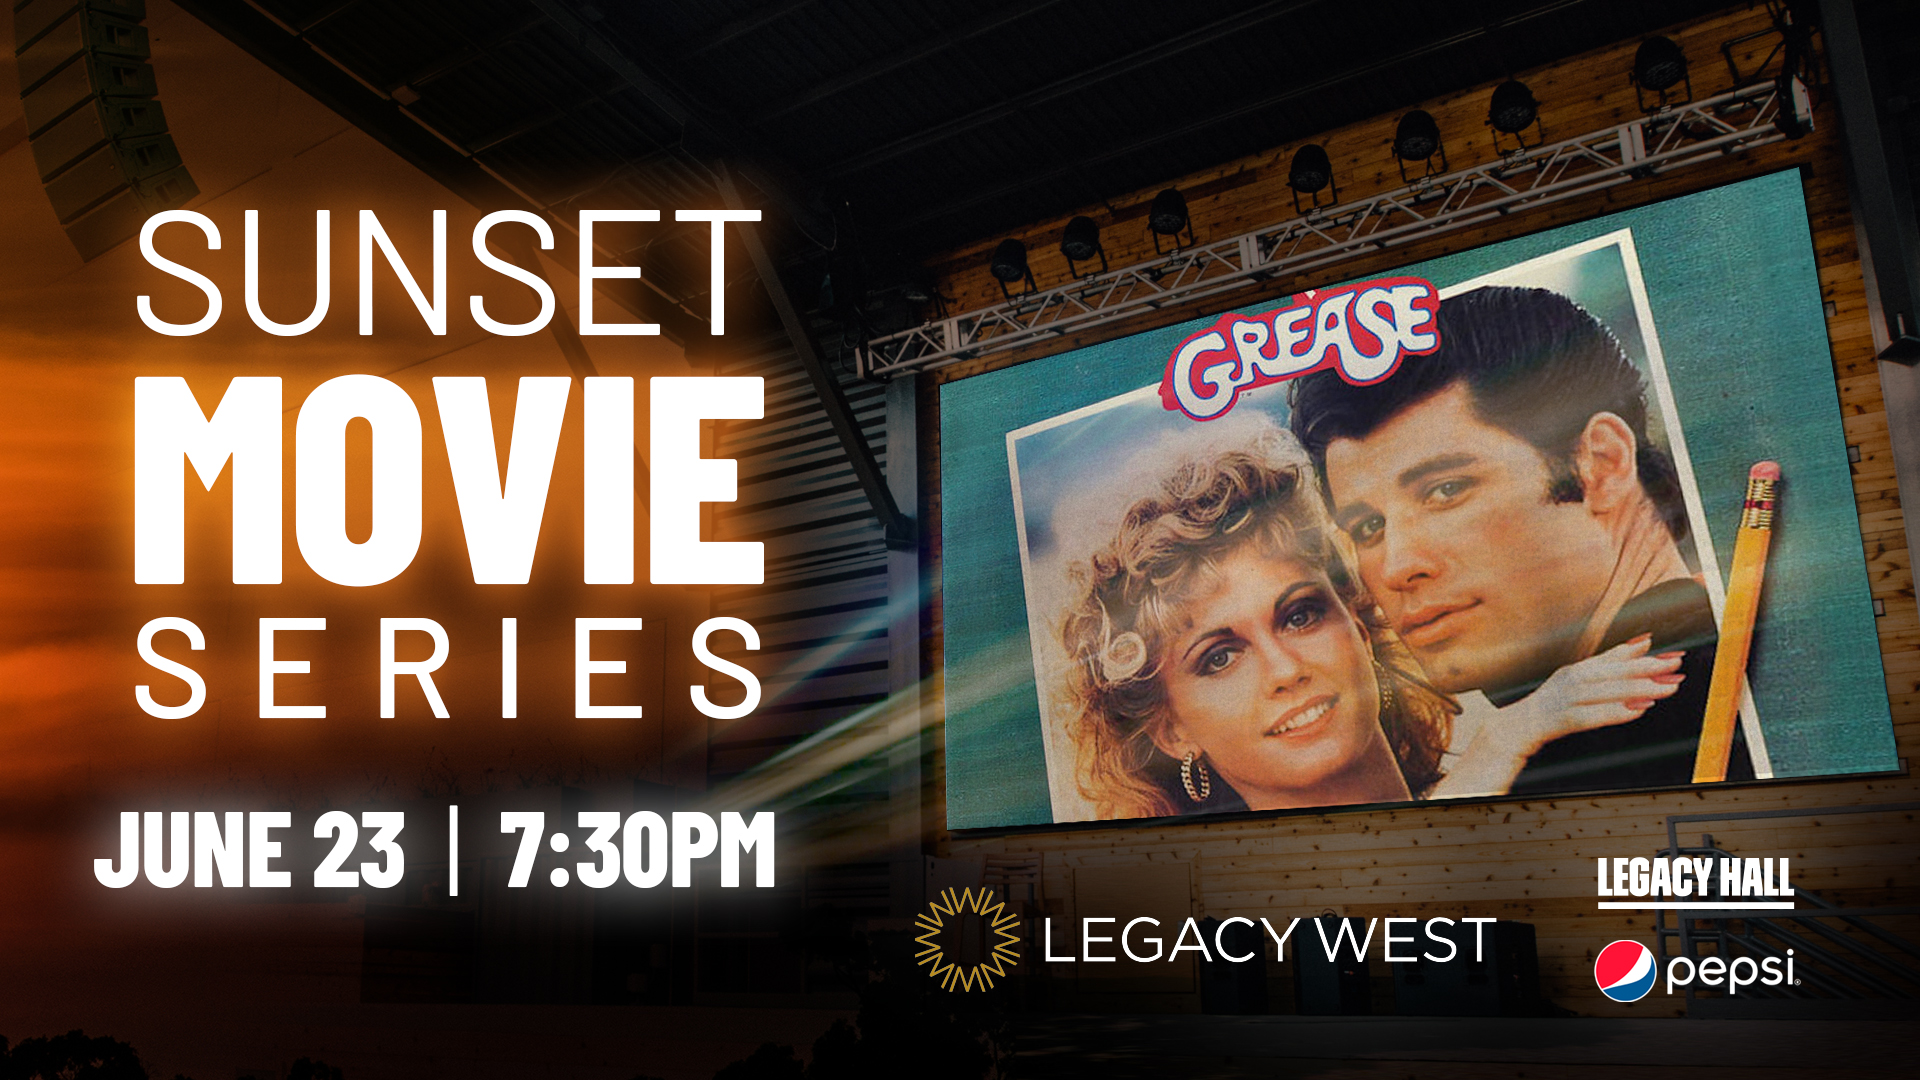 Promo image of Sunset Movie Series: Grease